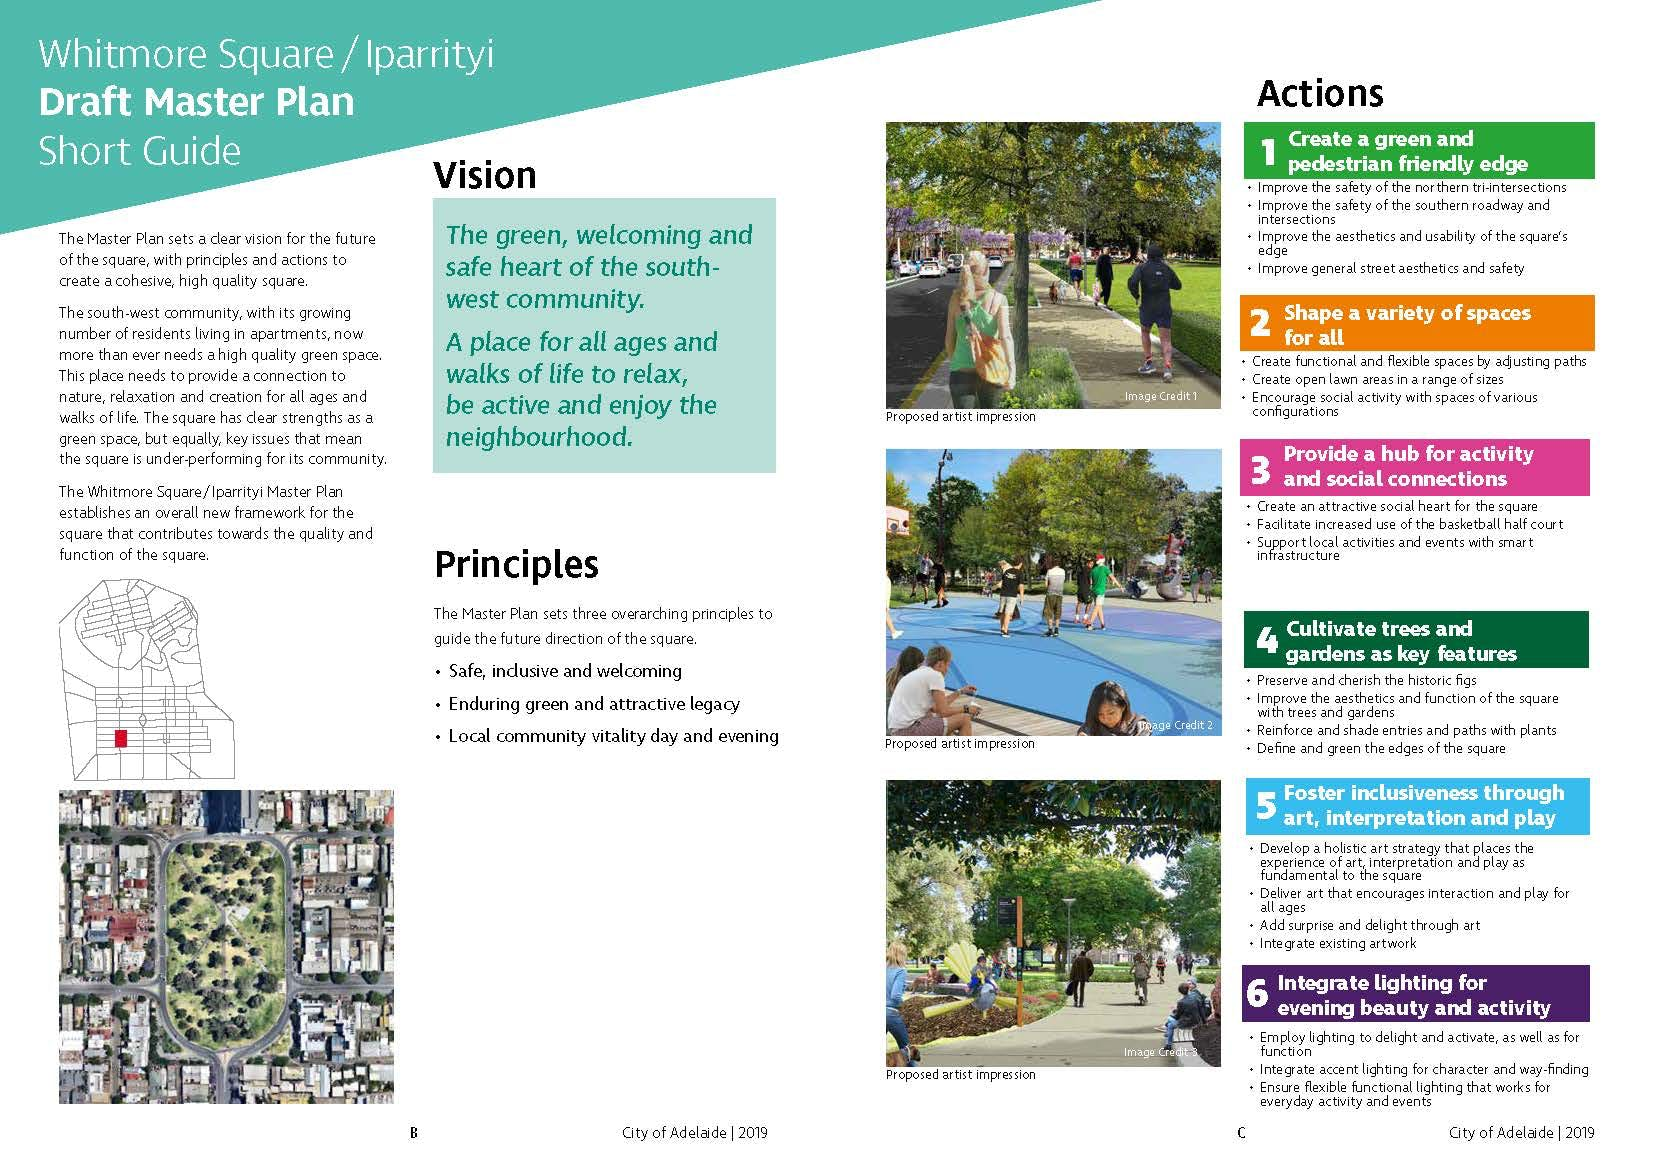 Short Guide to Master Plan page 1